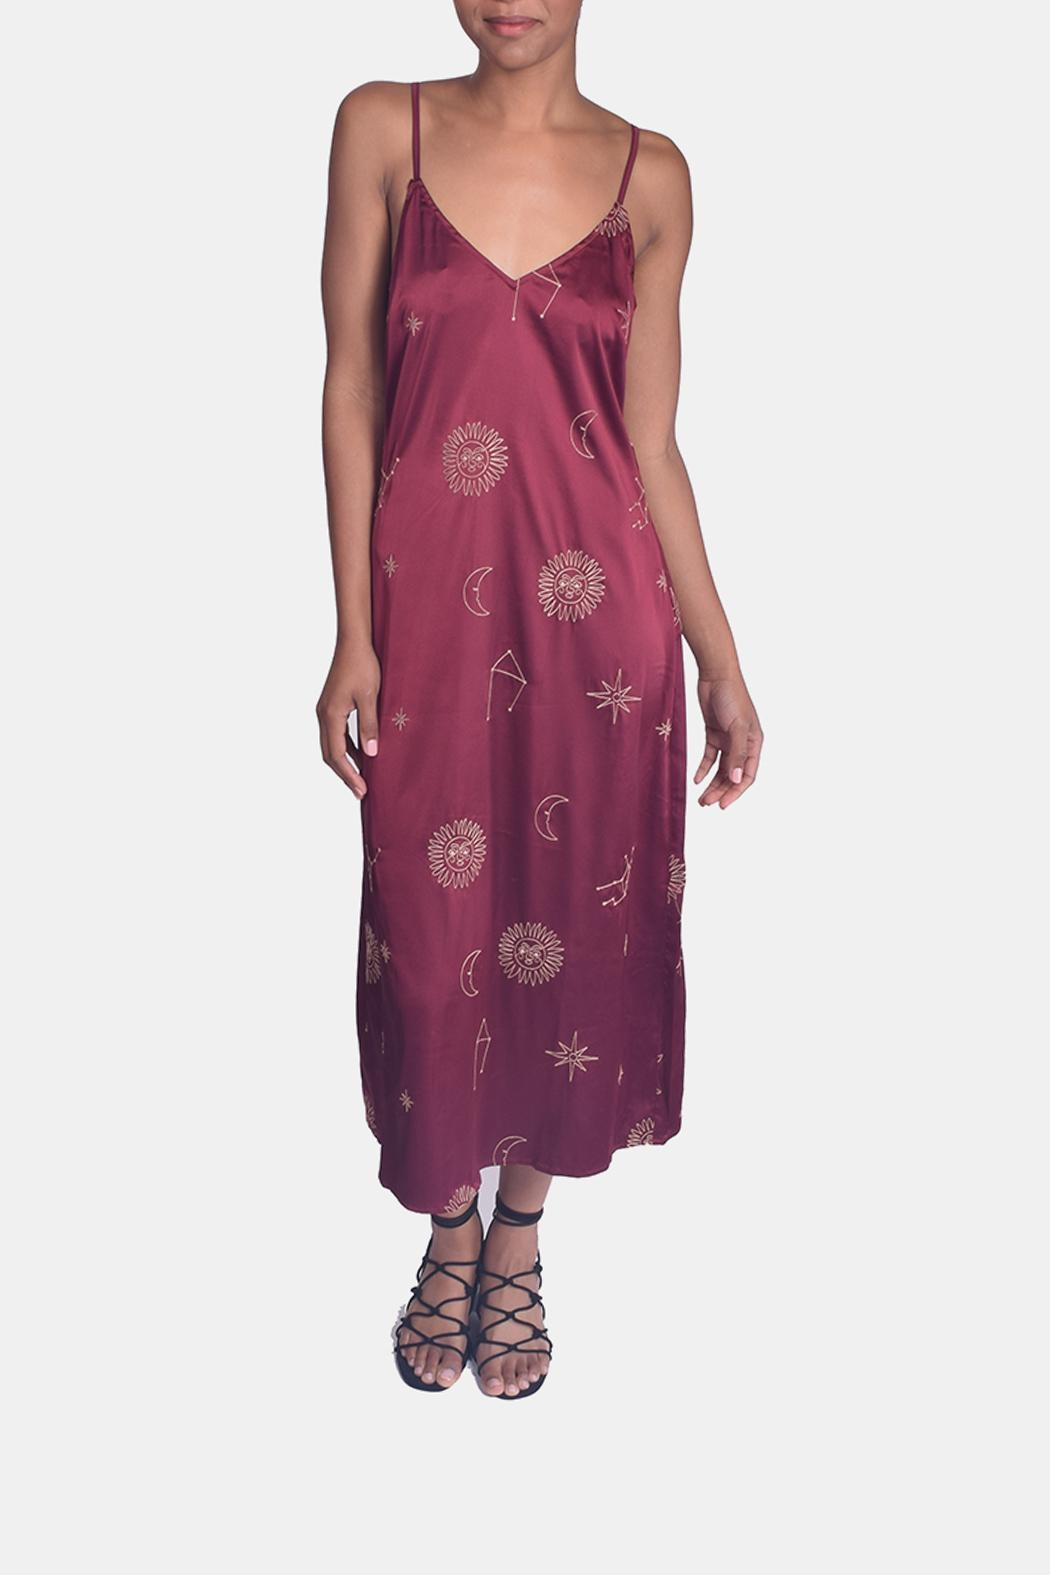 Honey Punch Witchy Woman Embroidered Dress - Main Image